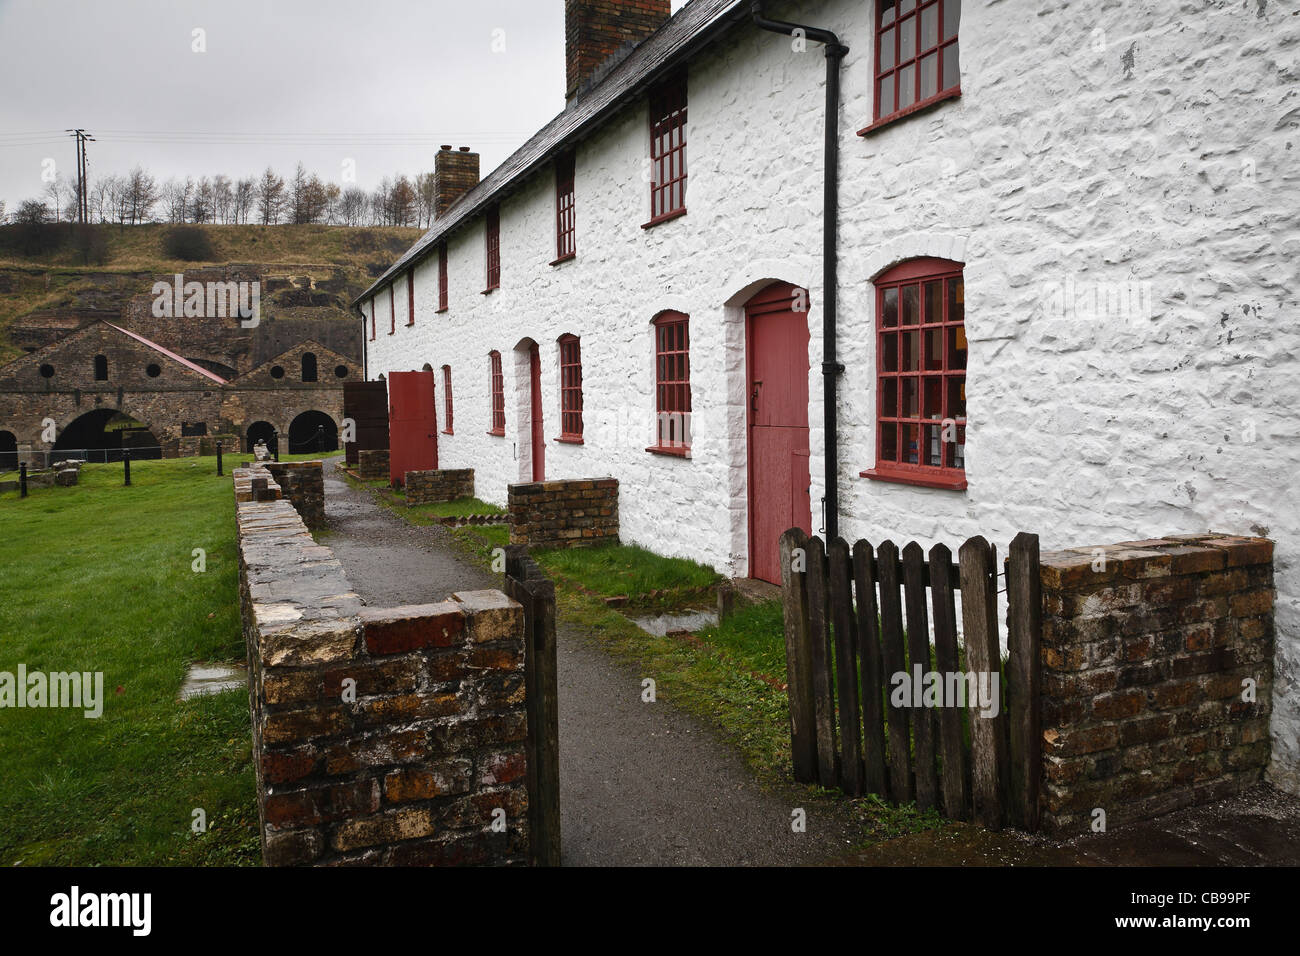 Preserved workers' cottages at Blaenavon Ironworks, Torfaen, Wales Stock Photo